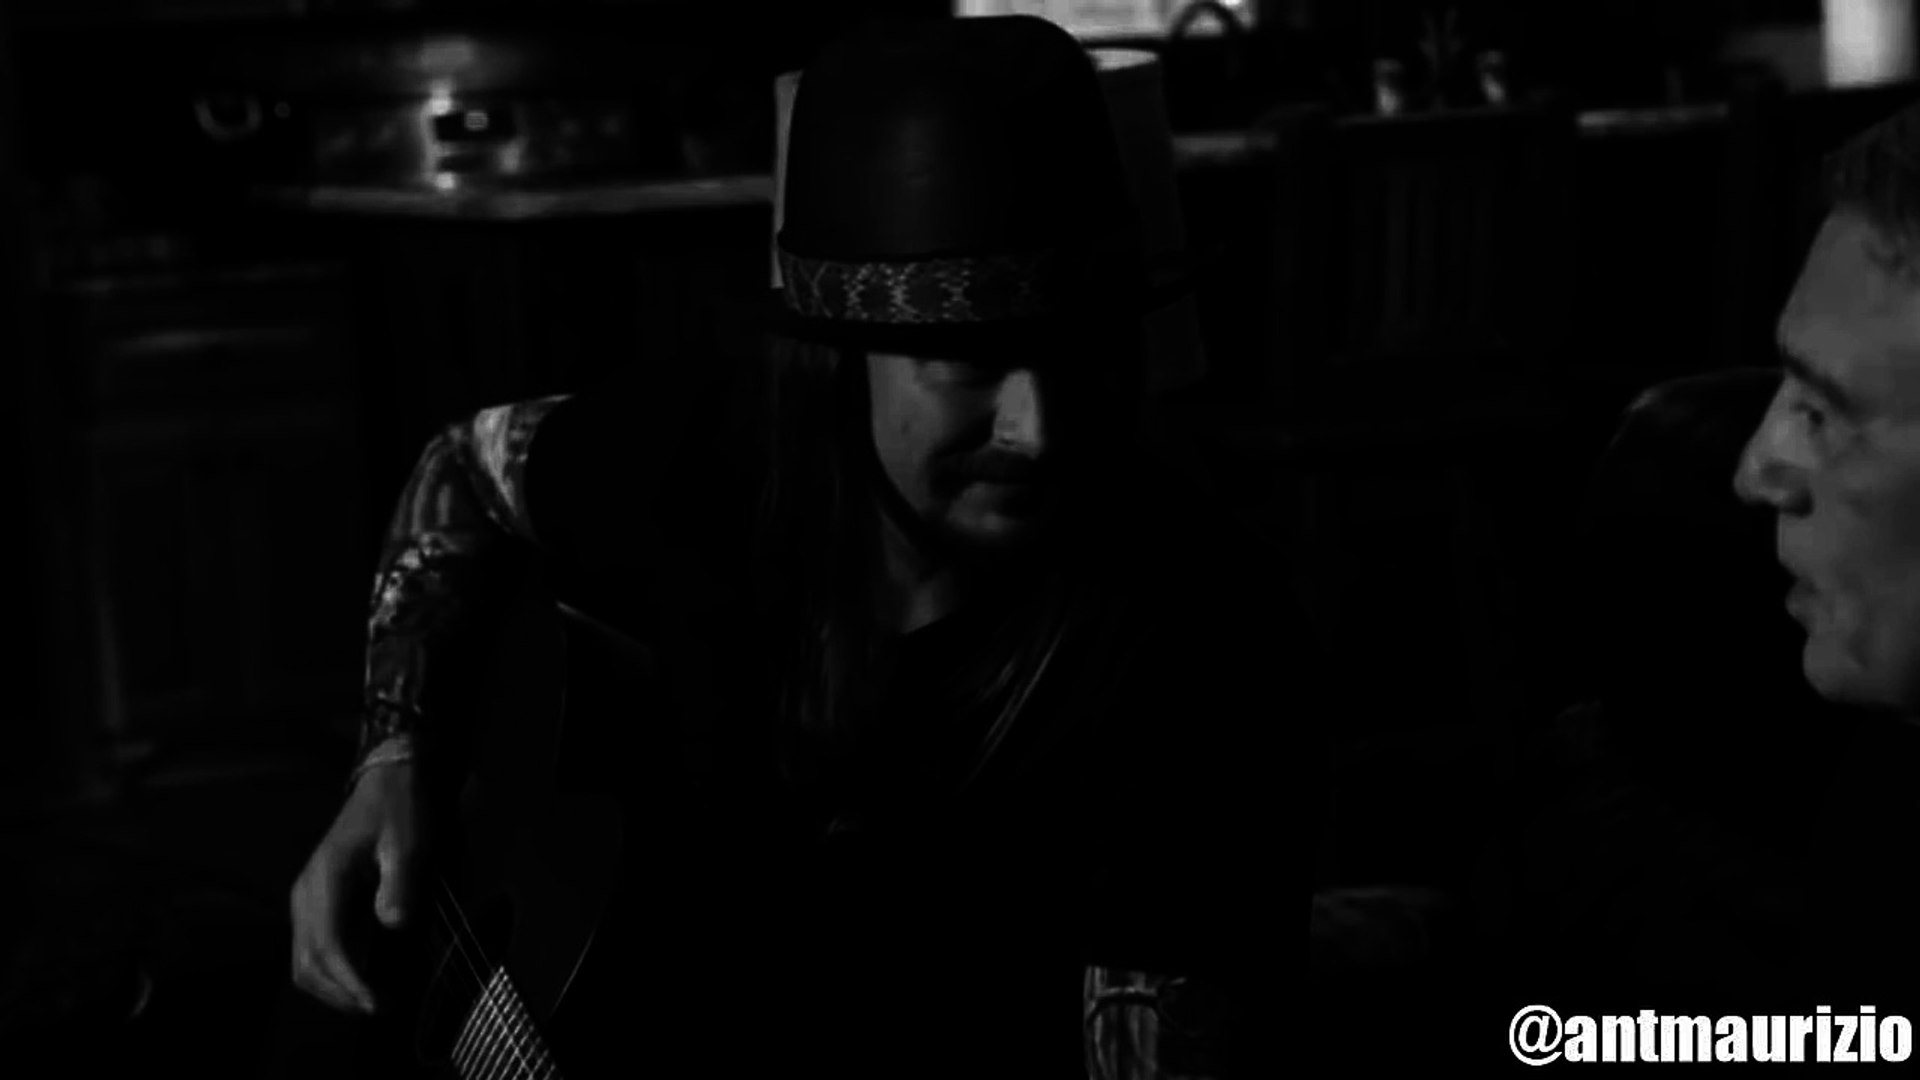 Kid Rock Tennessee Mountain Top [2017 MUSIC VIDEO]